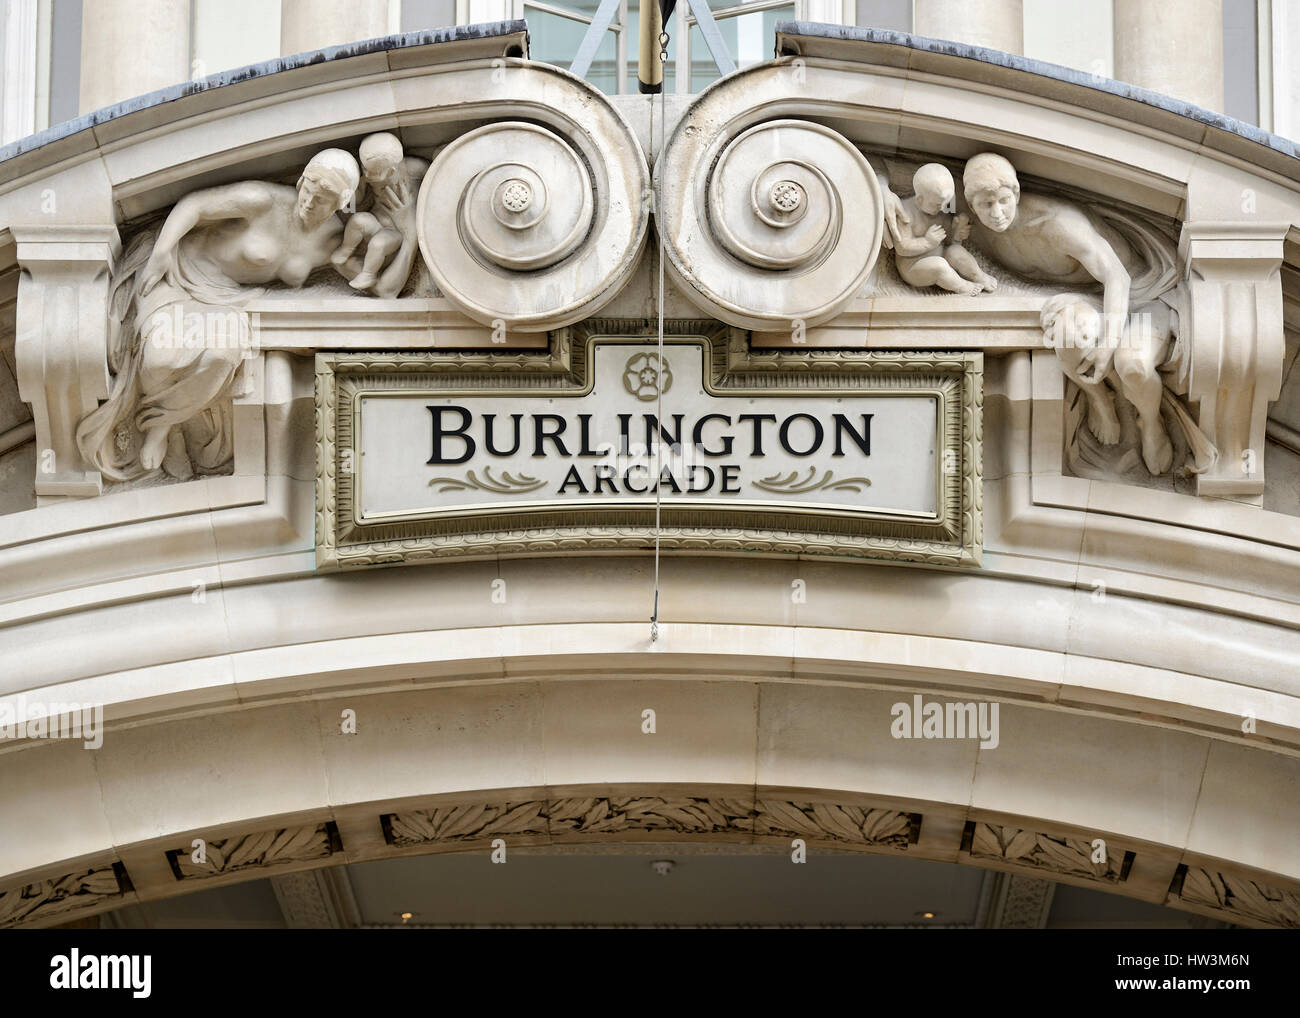 Burlington Arcade, Piccadilly, London, UK. Stock Photo